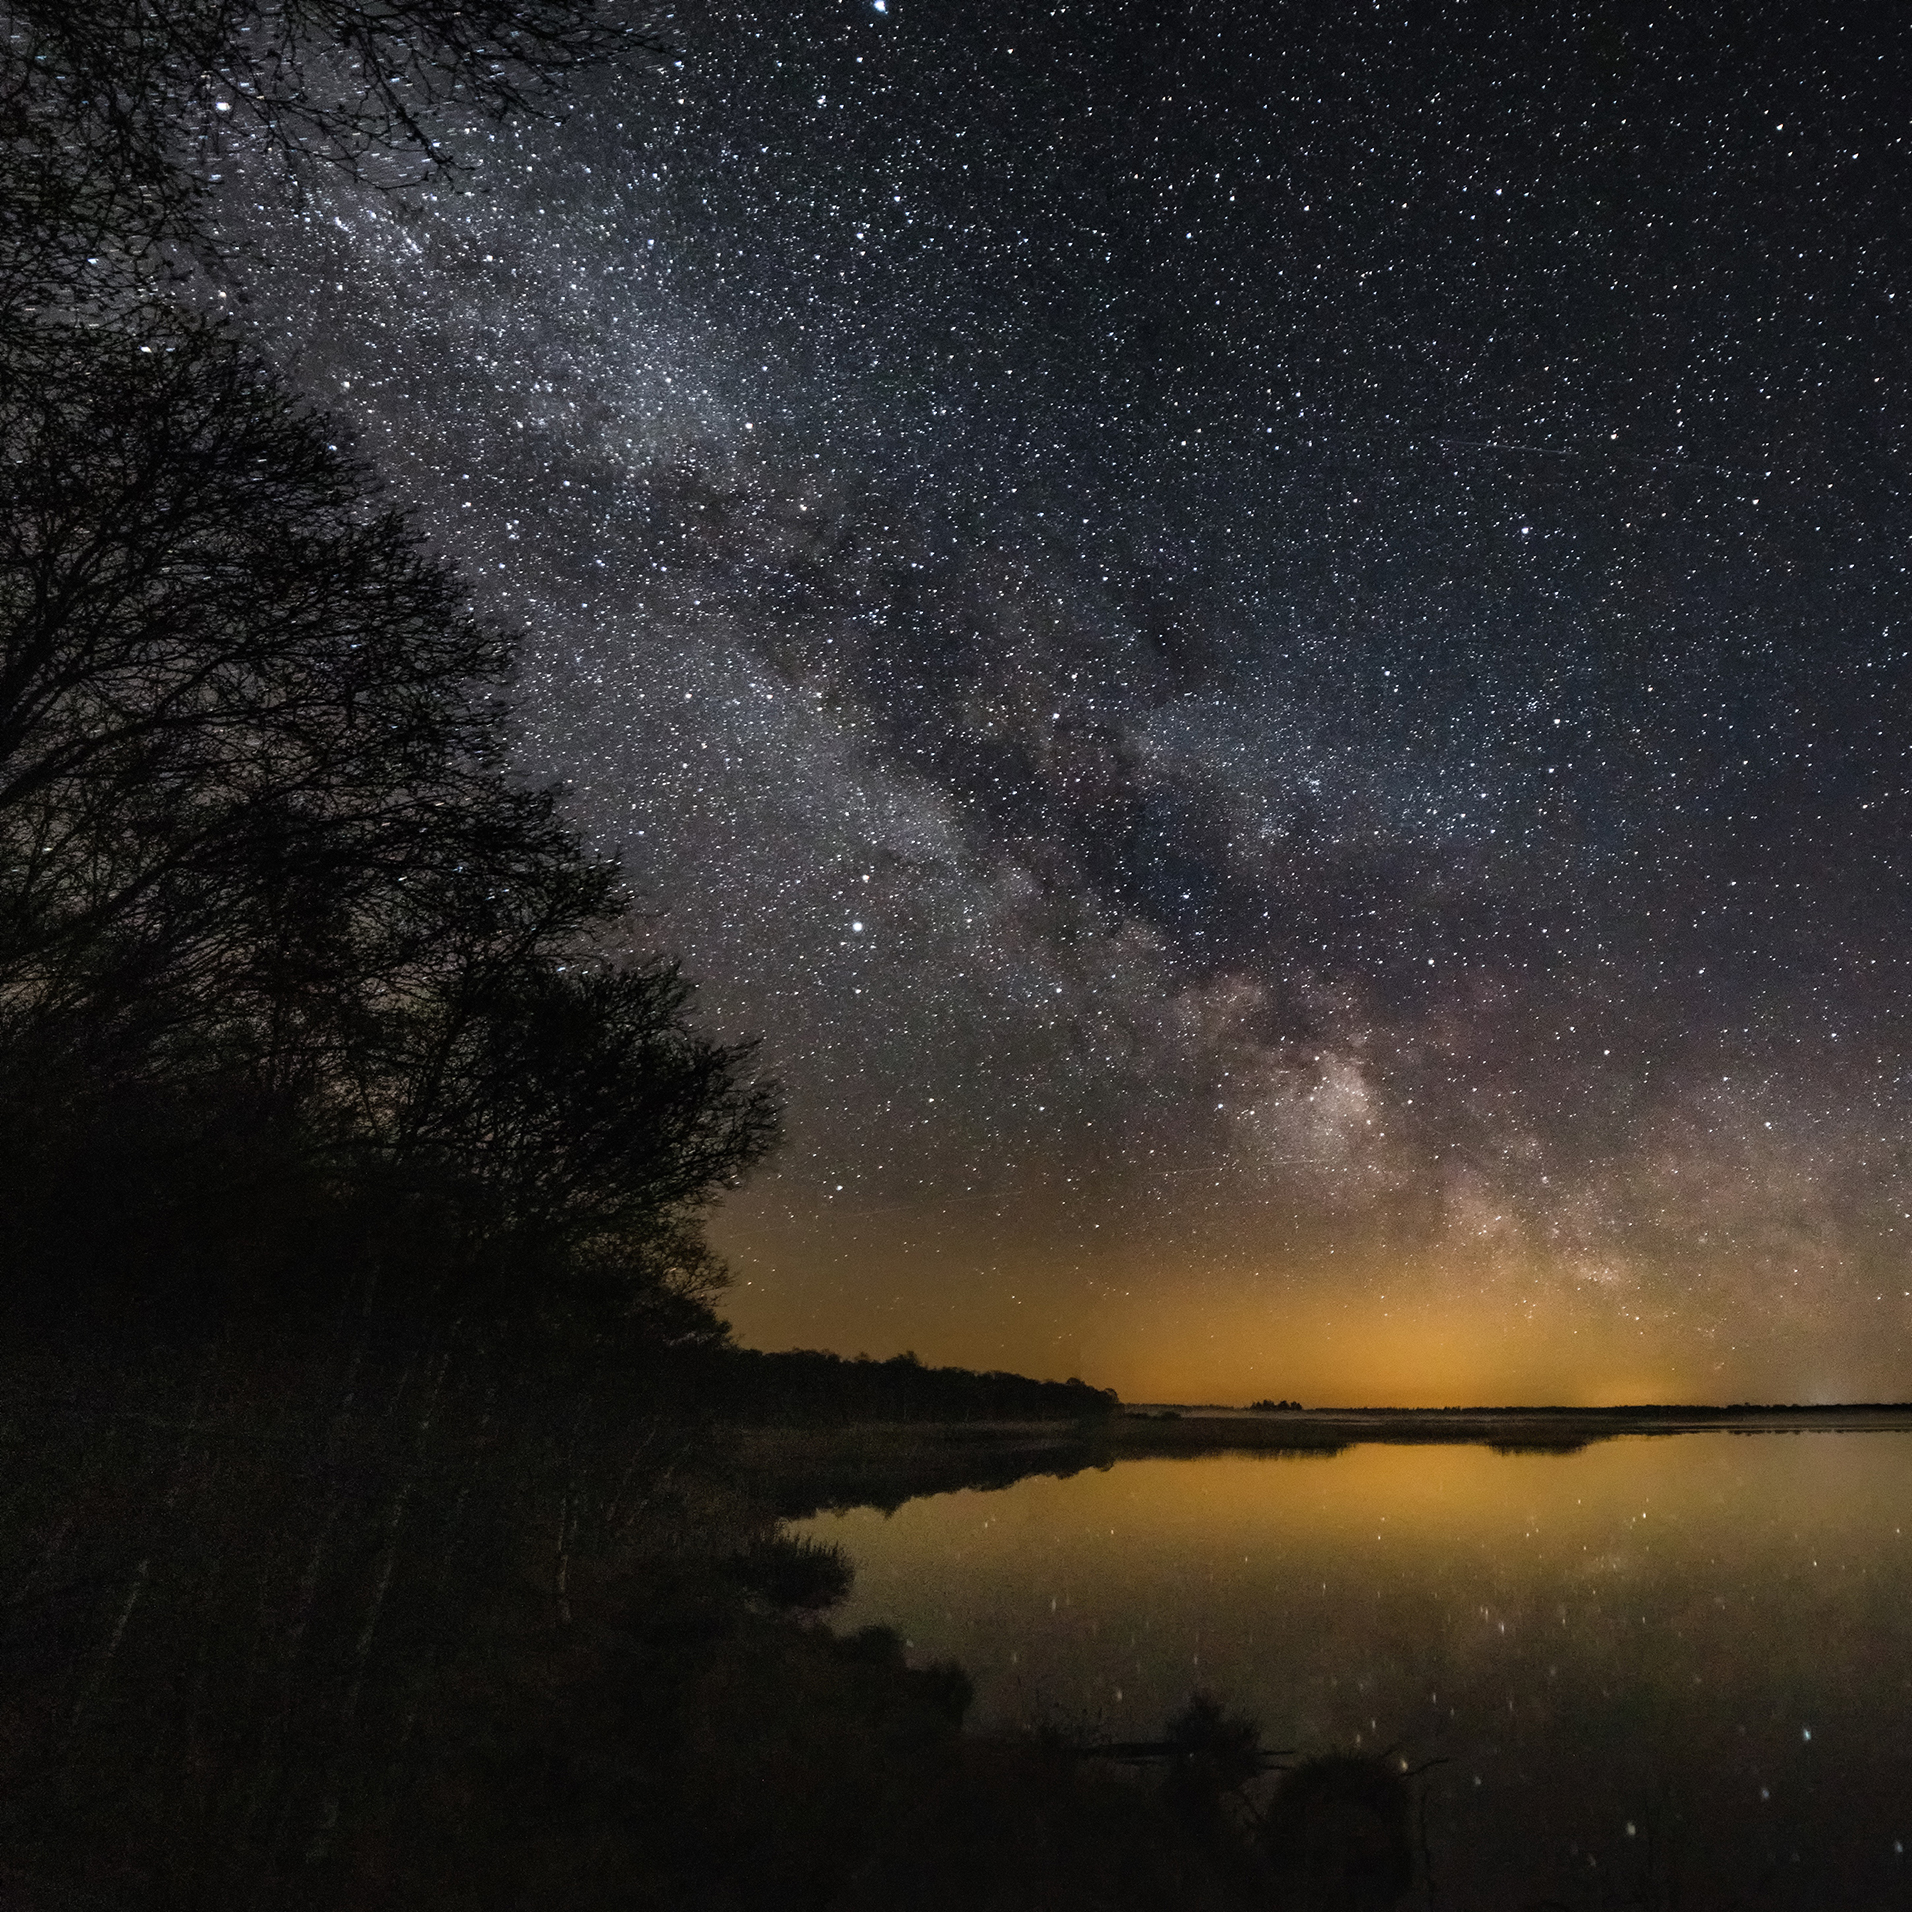 Milky Way by Lake